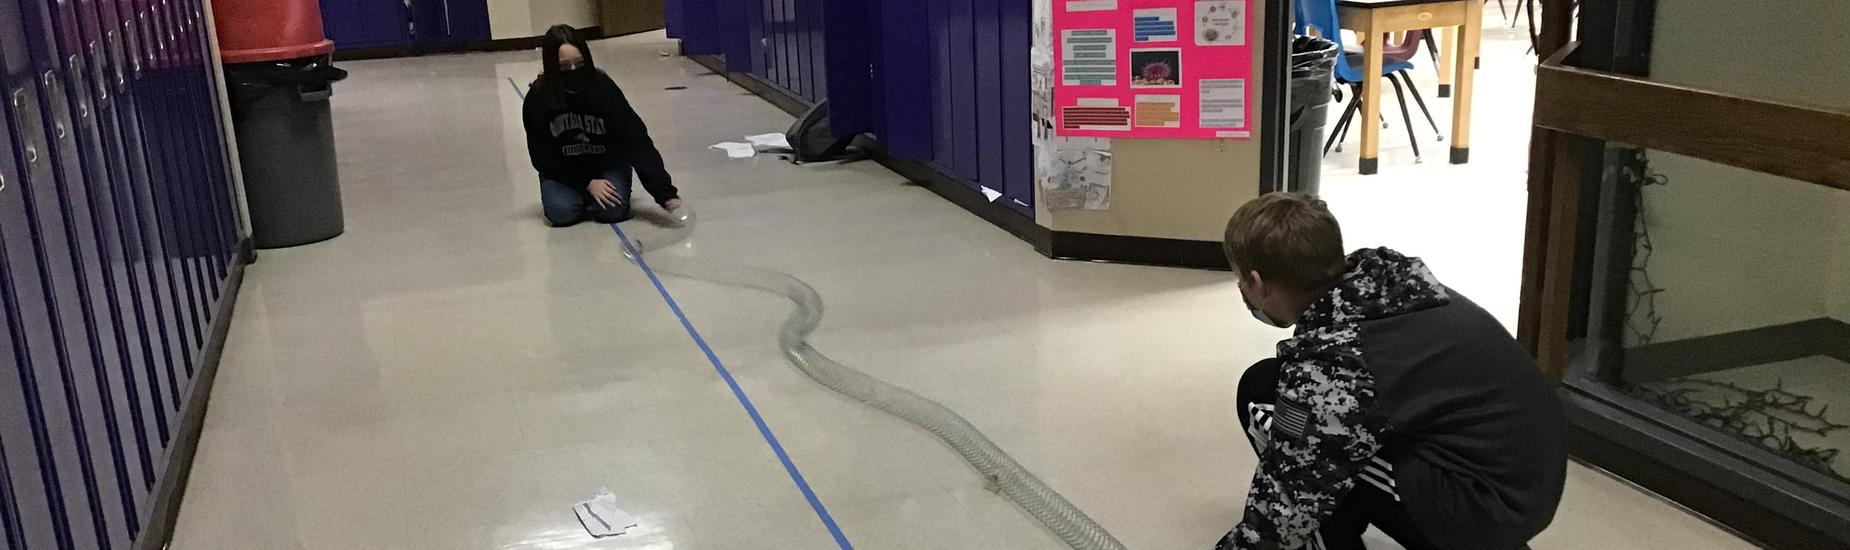 Students working on the floor with a slinky lab